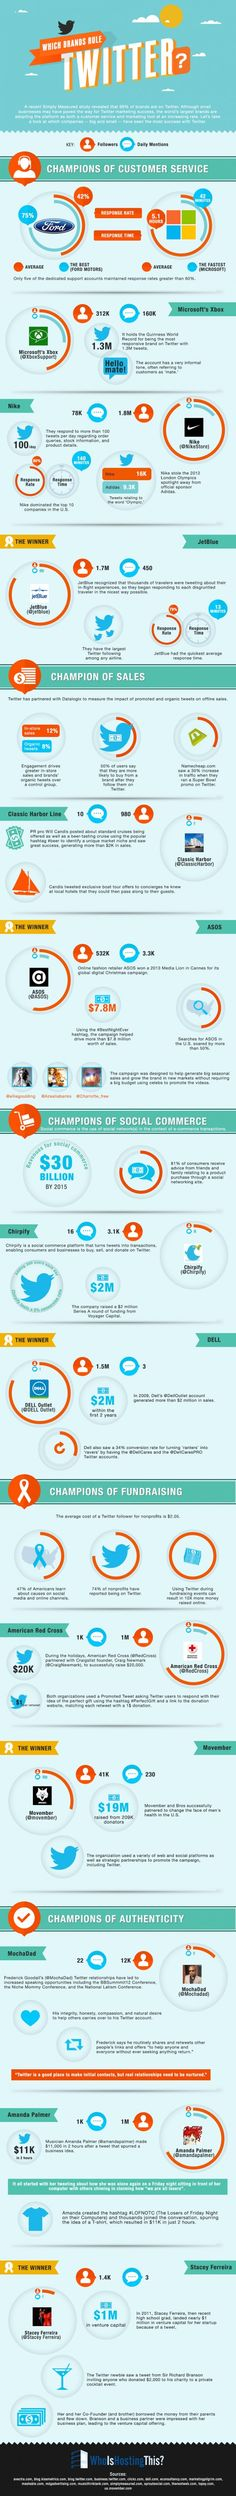 What Brands Rule Twitter? [INFOGRAPHIC]